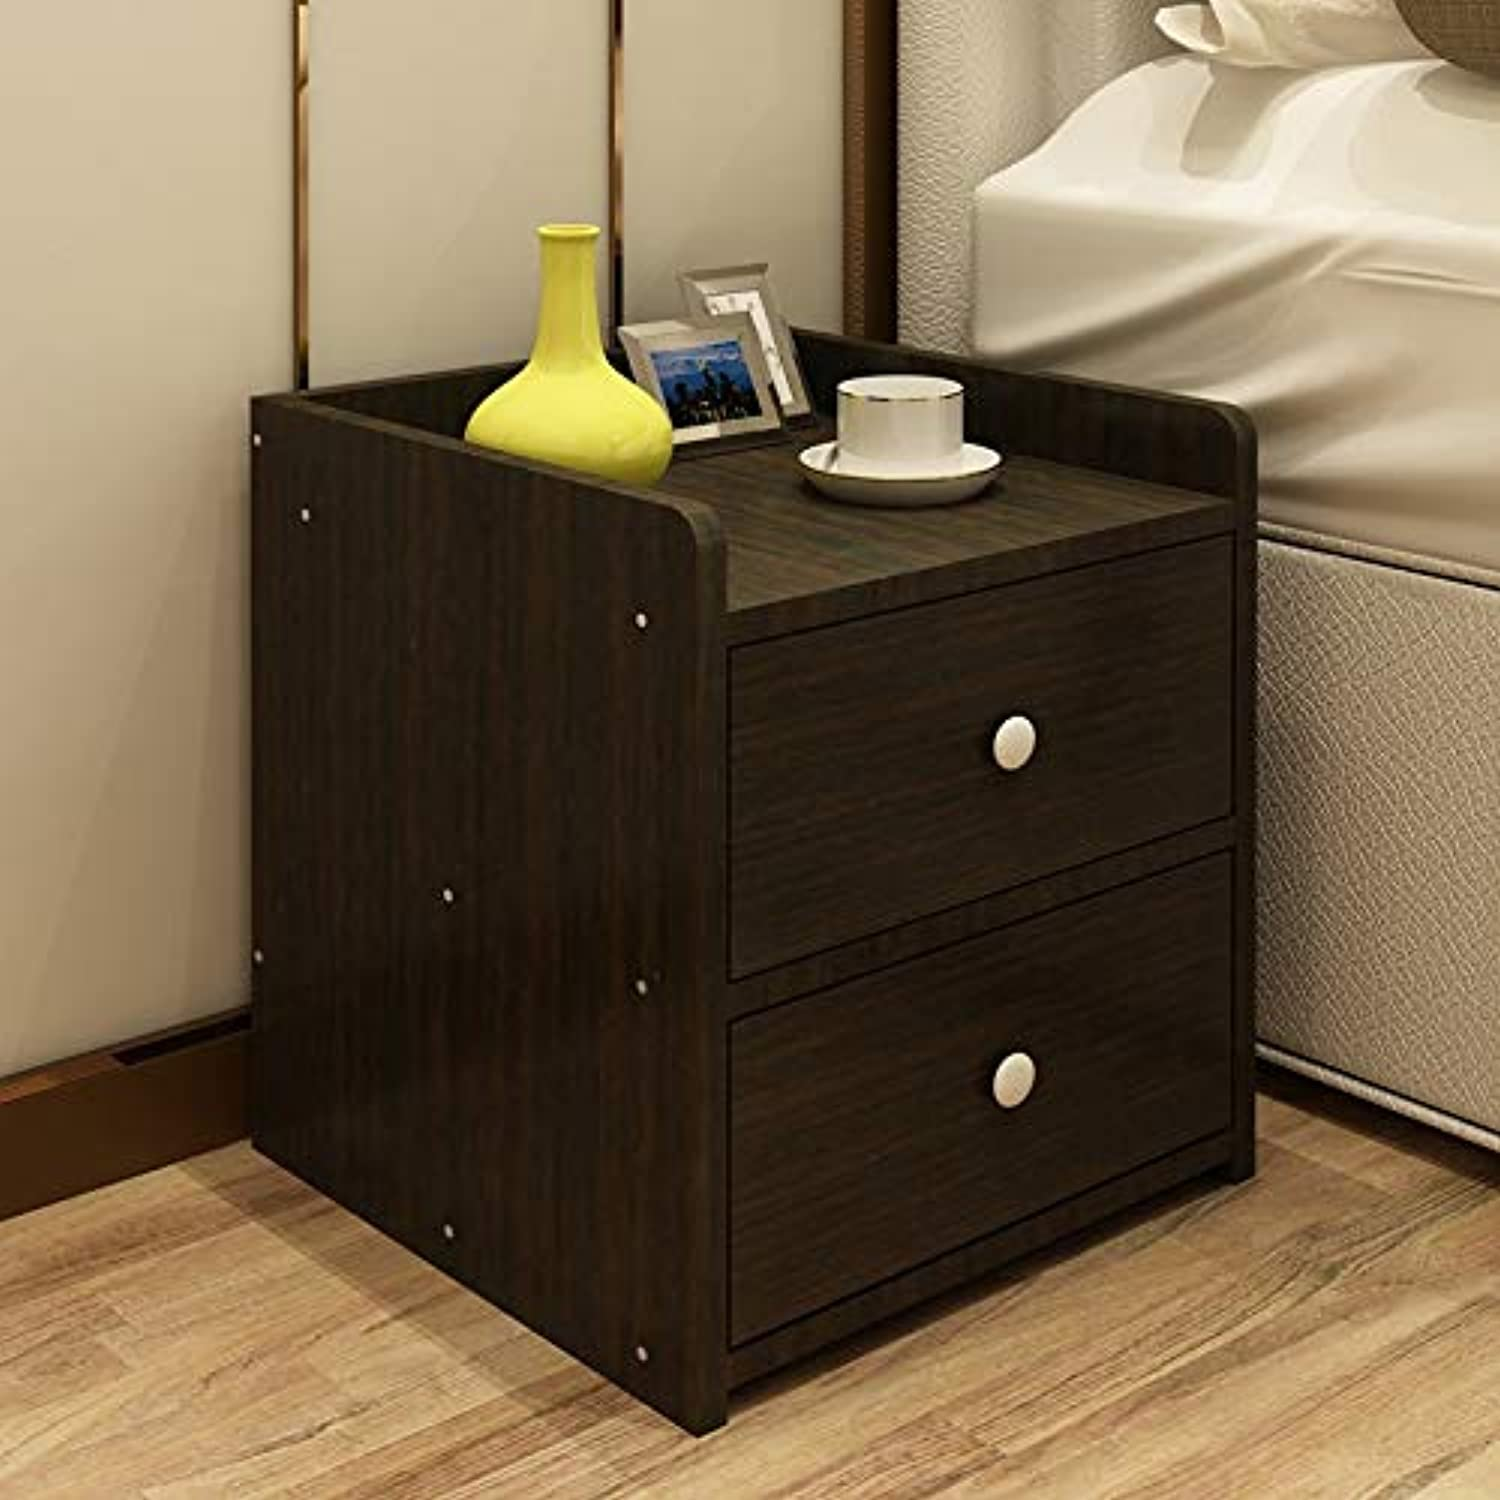 NYDZDM Bedside Cabinet Locker with 2 Drawers Bedroom Storage Bedside Cabinet Simple Small Cabinet (color   D)